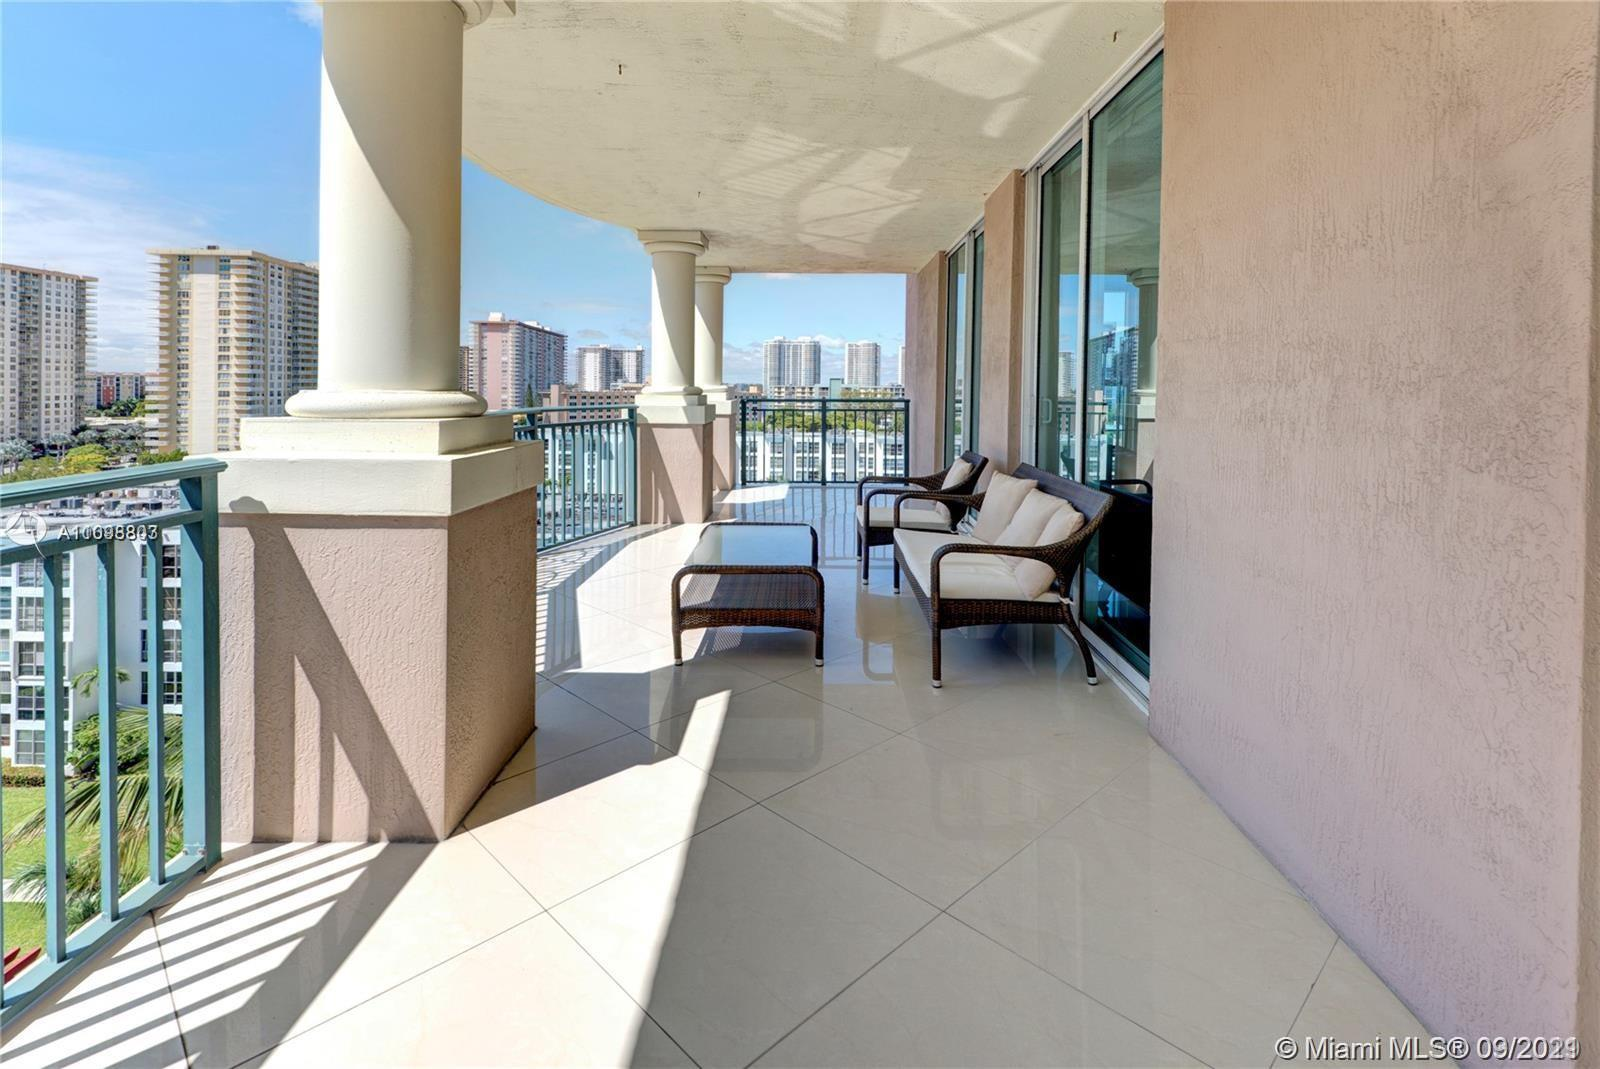 AMAZING TURN KEY UNIT BOASTING A LARGE PATIO WITH OCEAN VIEW, SHORT WALK TO THE BEACH, SHOPPING AND